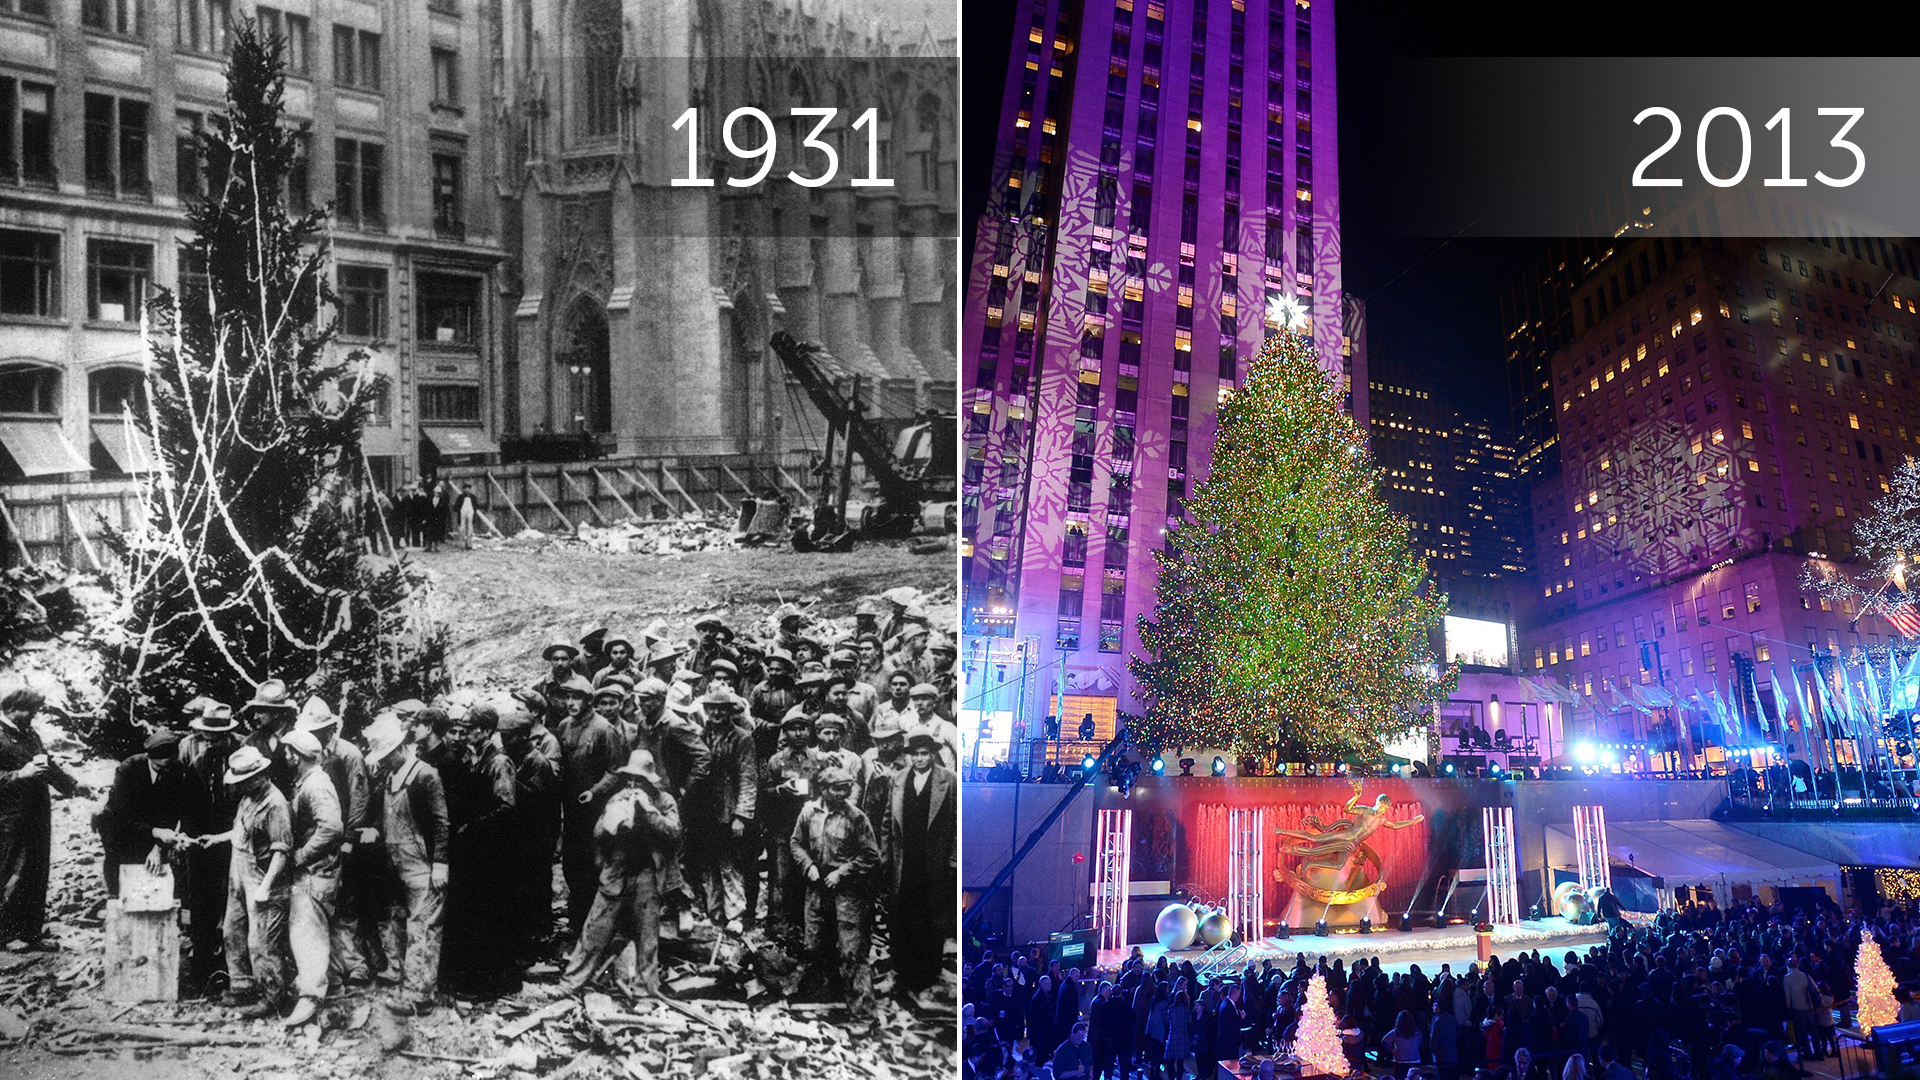 Rockefeller Christmas tree, then and now